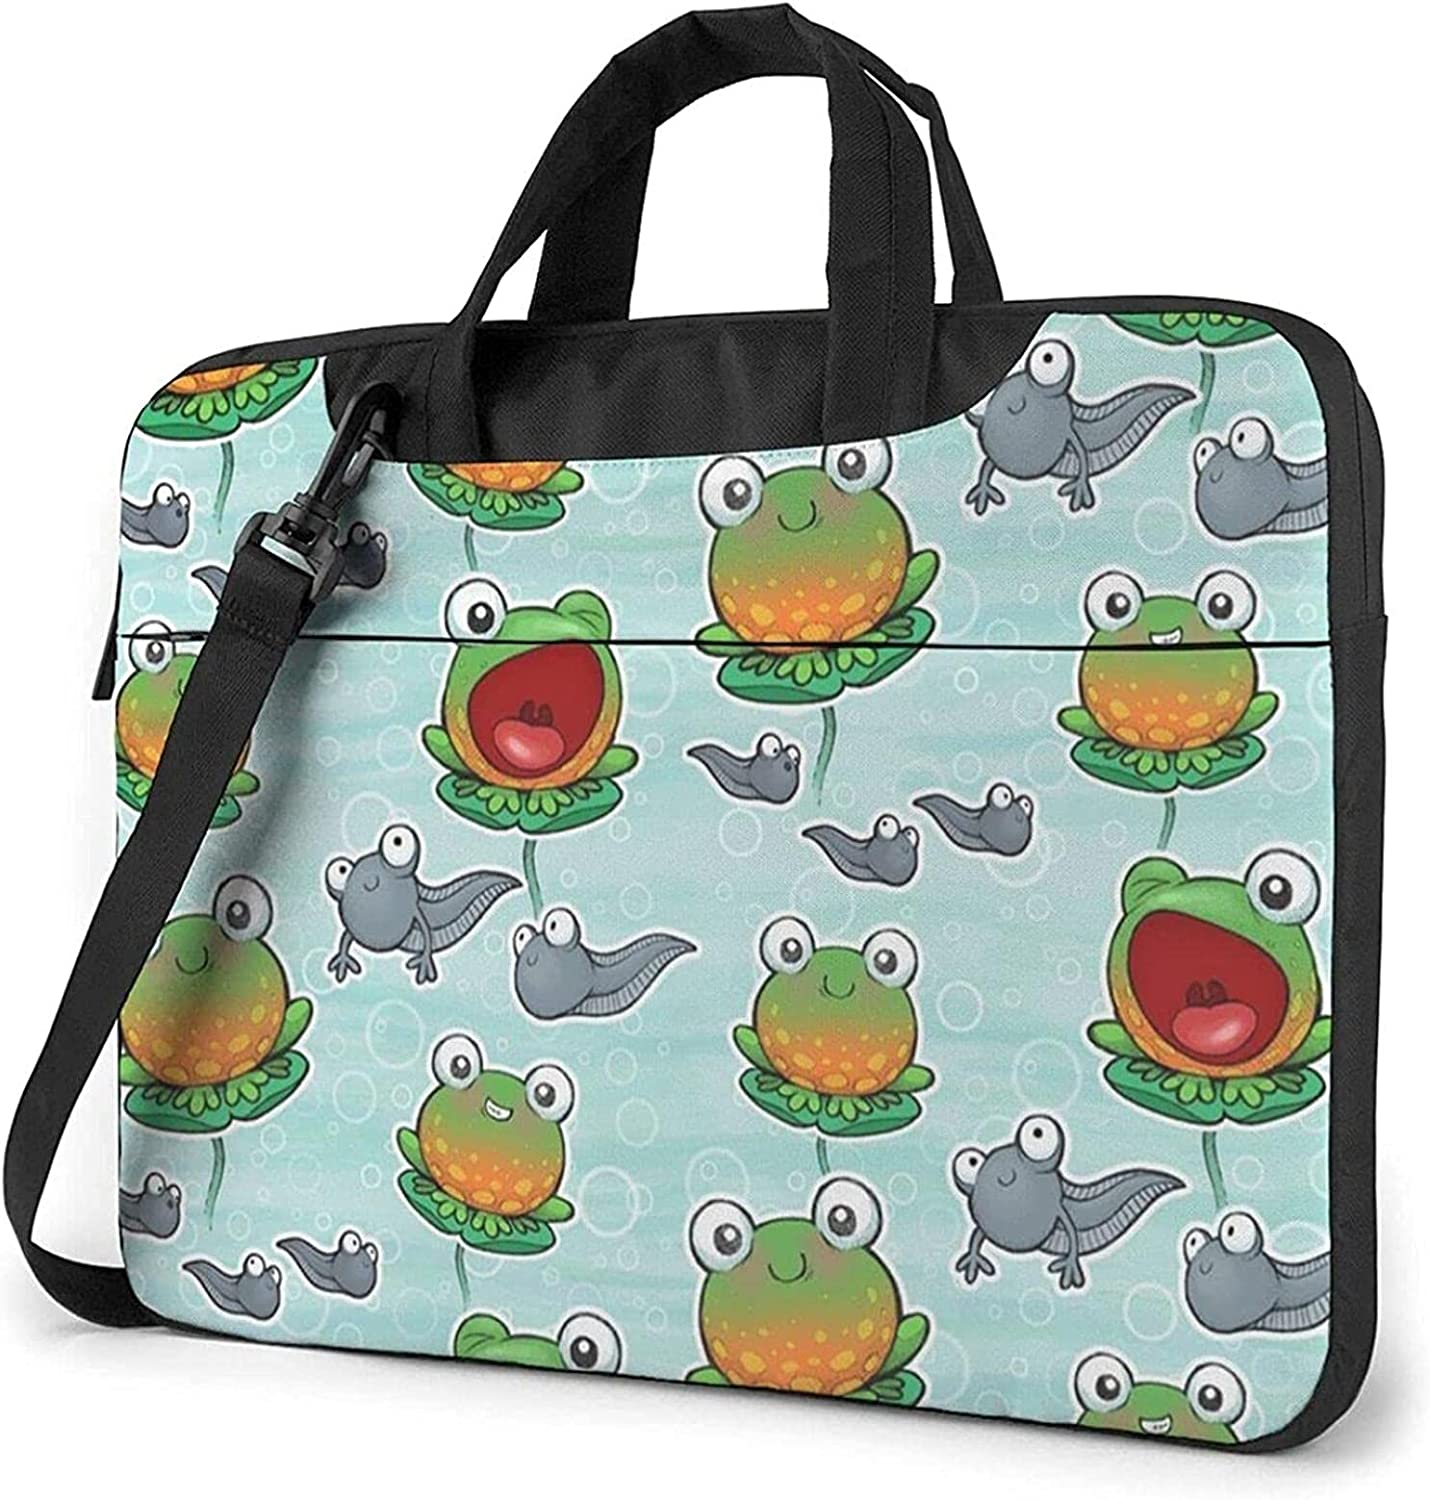 Epushow Cute Frog Factory outlet and Tadpole Laptop Strap Bag Inch 14 shopping Shoulder